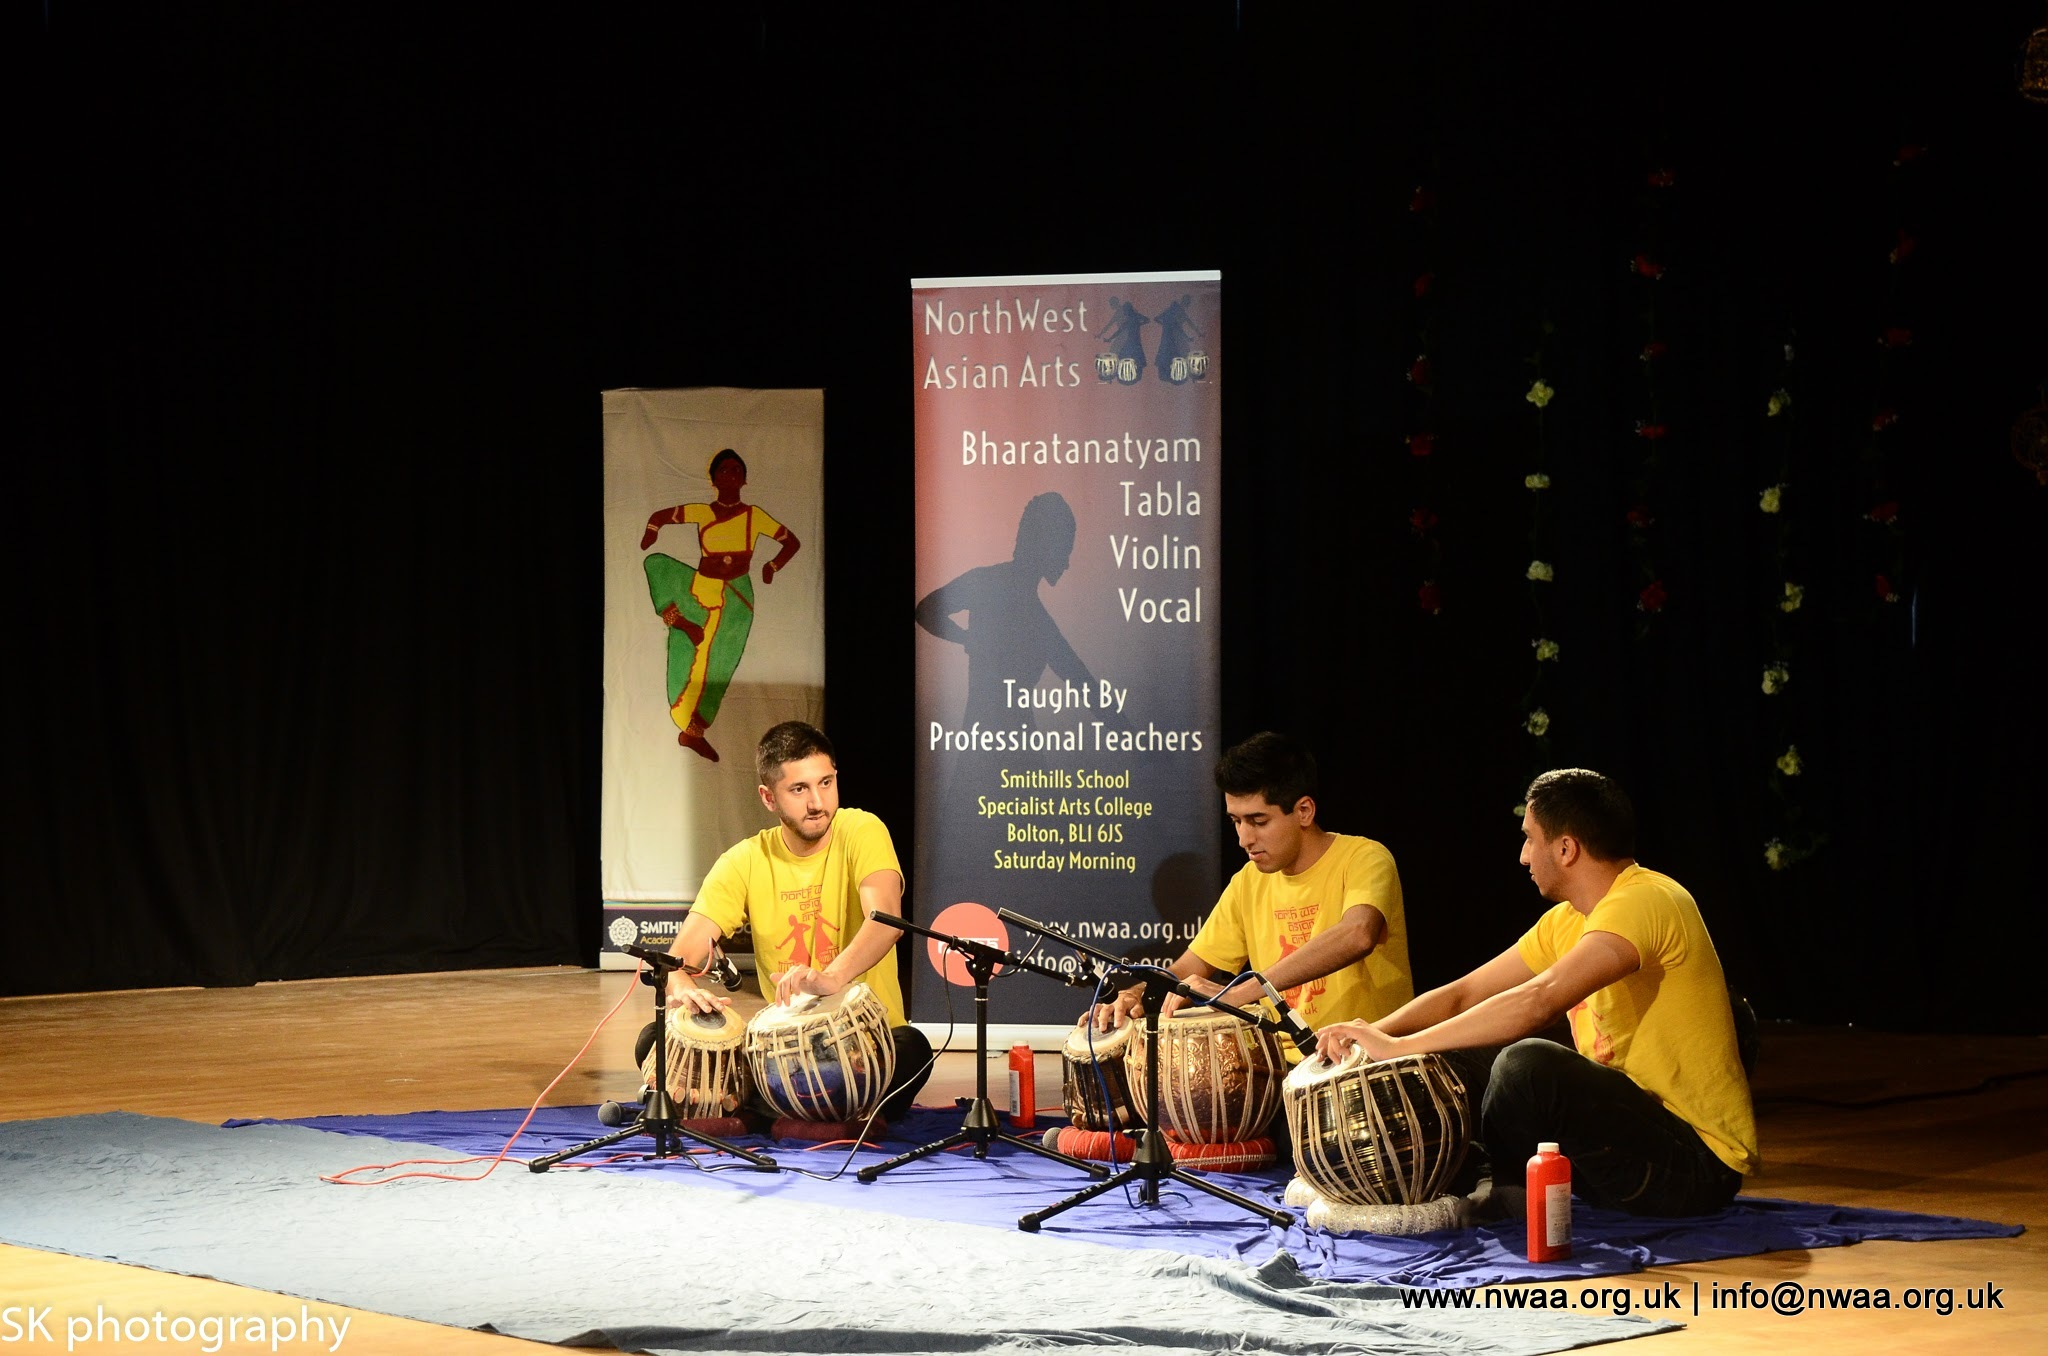 North West Asian Arts - Rhythm of India 2016 - Tabla